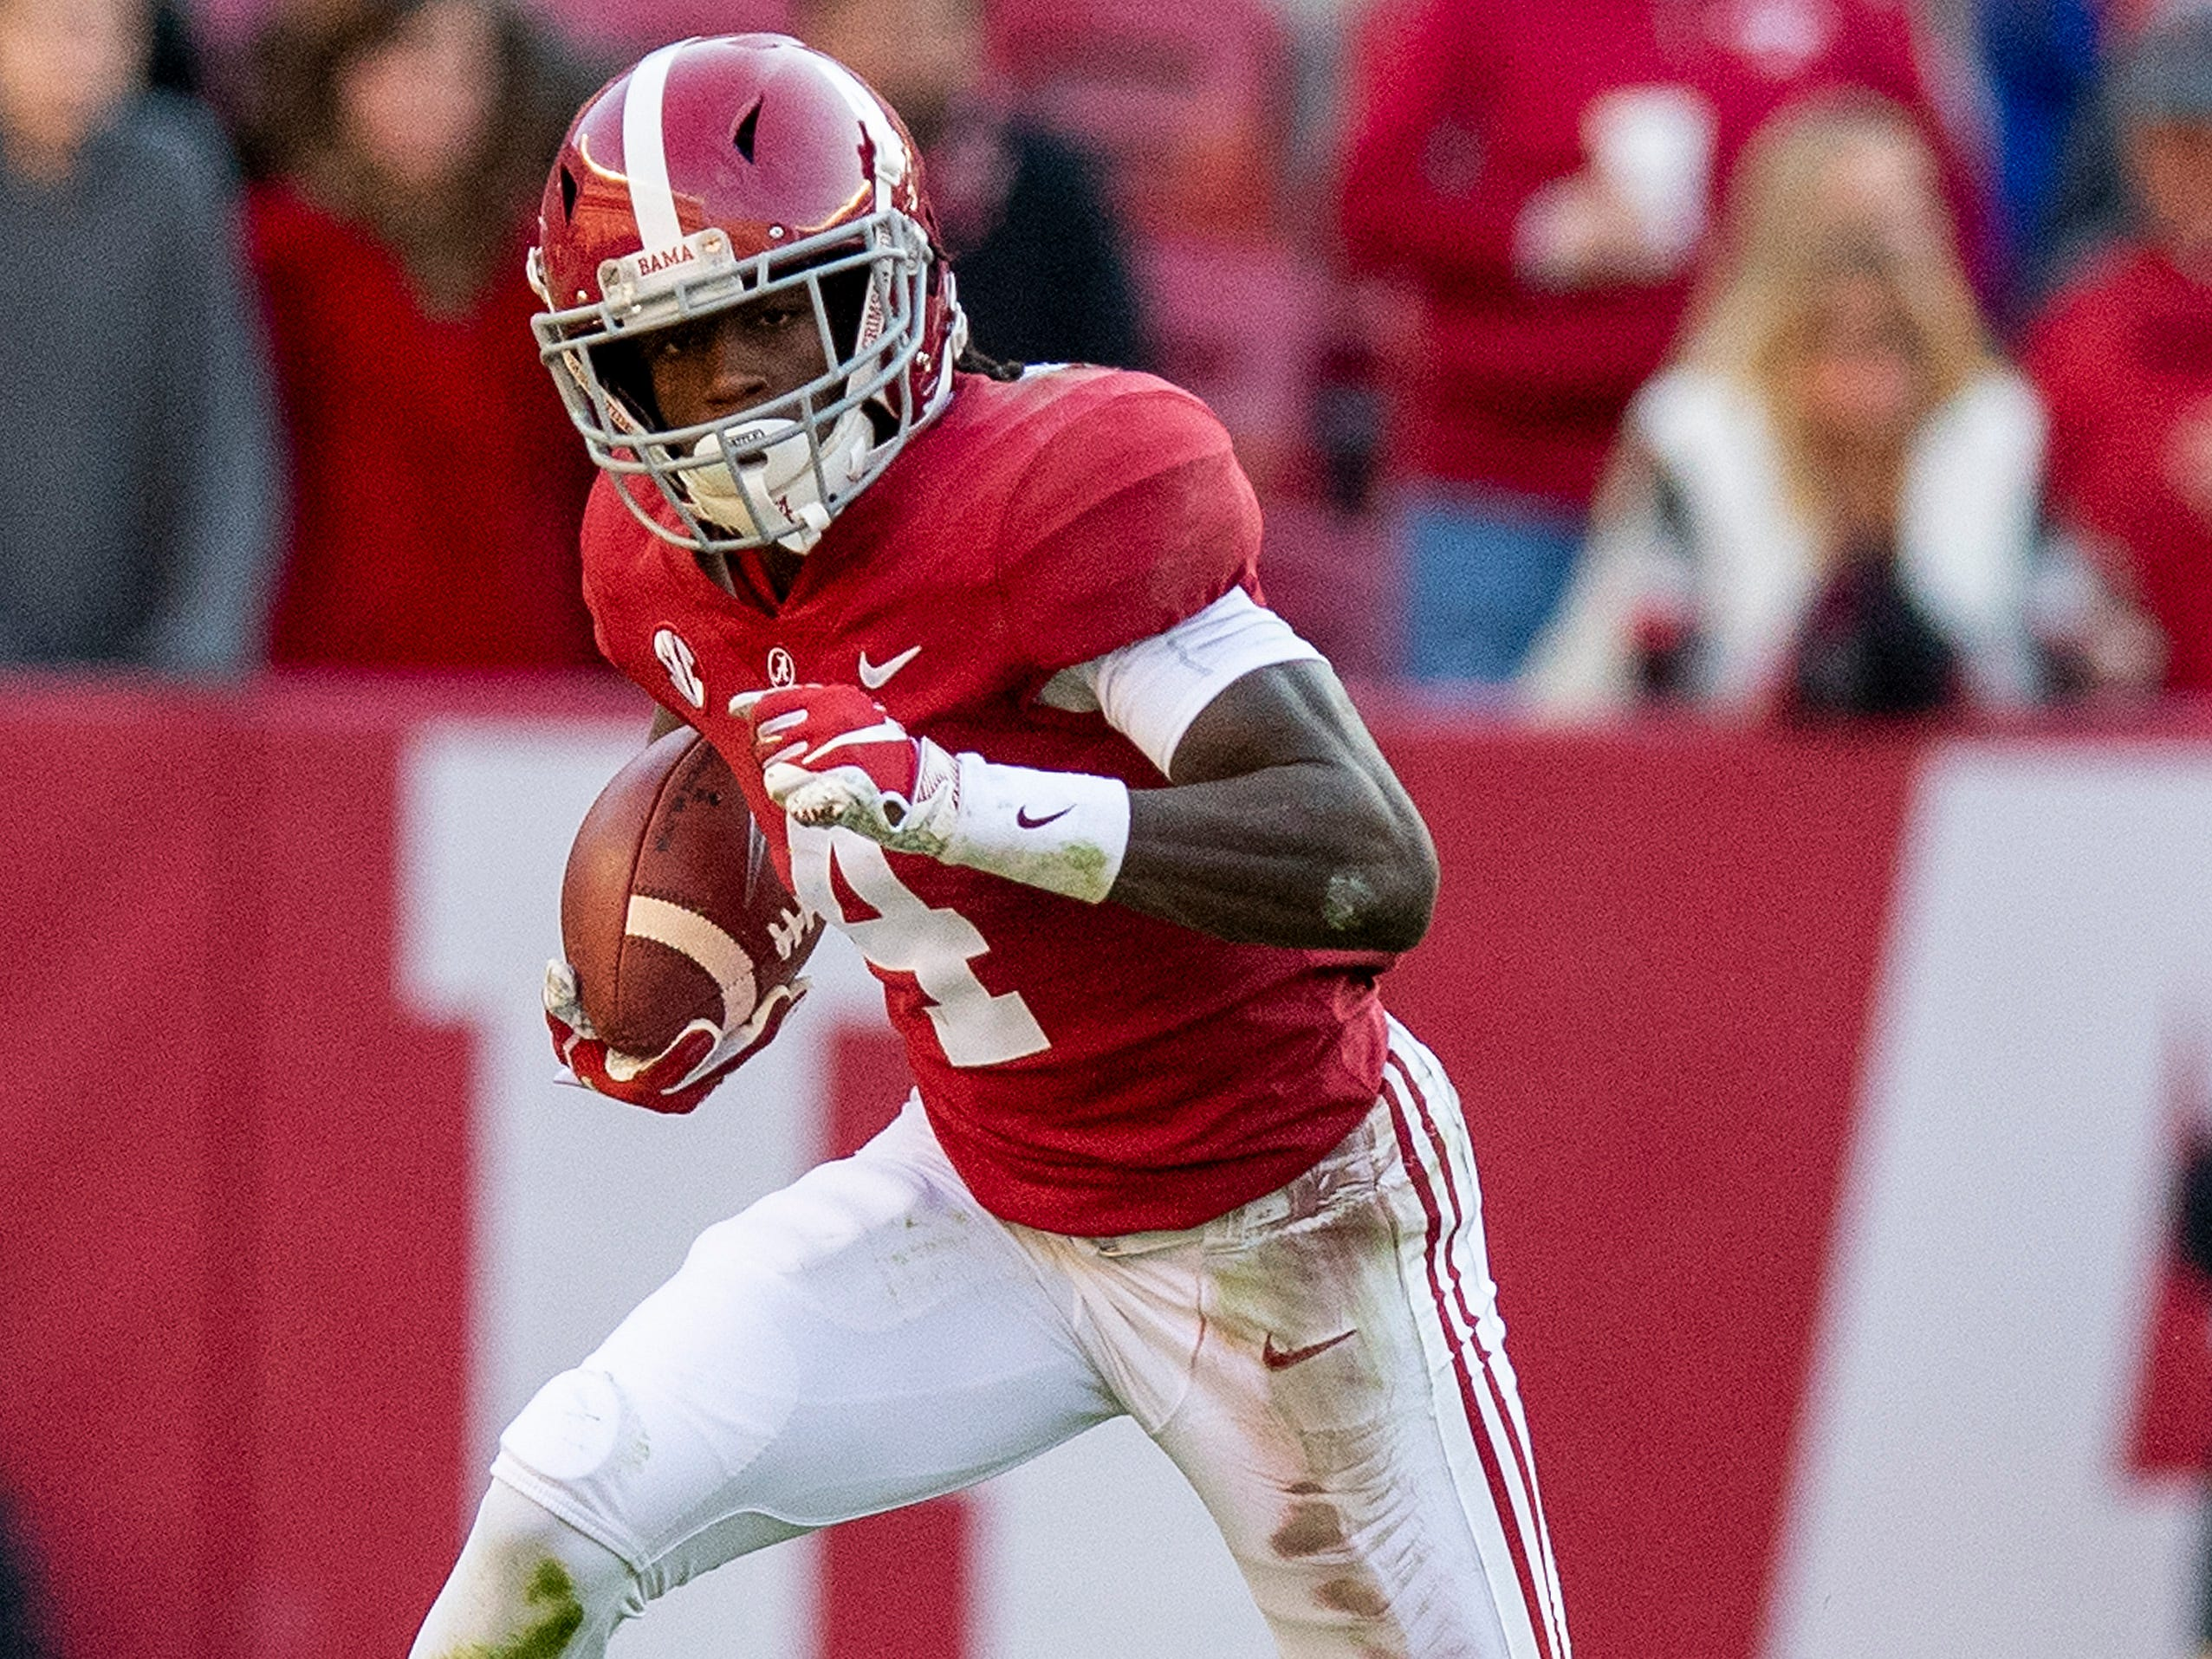 Alabama wide receiver Jerry Jeudy (4) carries the ball in first half action against Mississippi State at Bryant Denny Stadium in Tuscaloosa, Ala., on Saturday November 9, 2018.